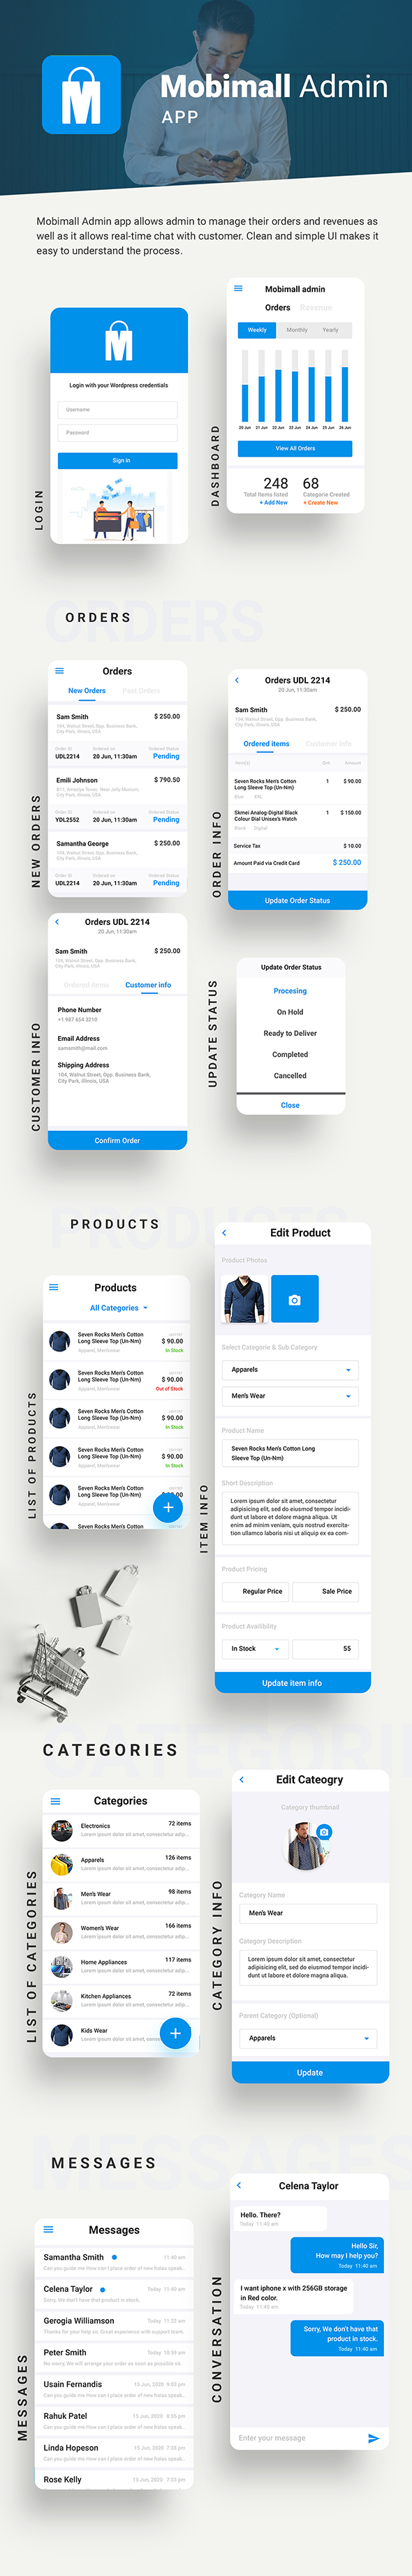 Ecommerce Android App Template + Ecommerce iOS App Template (HTML+CSS IONIC 3) | Mobimall - 5